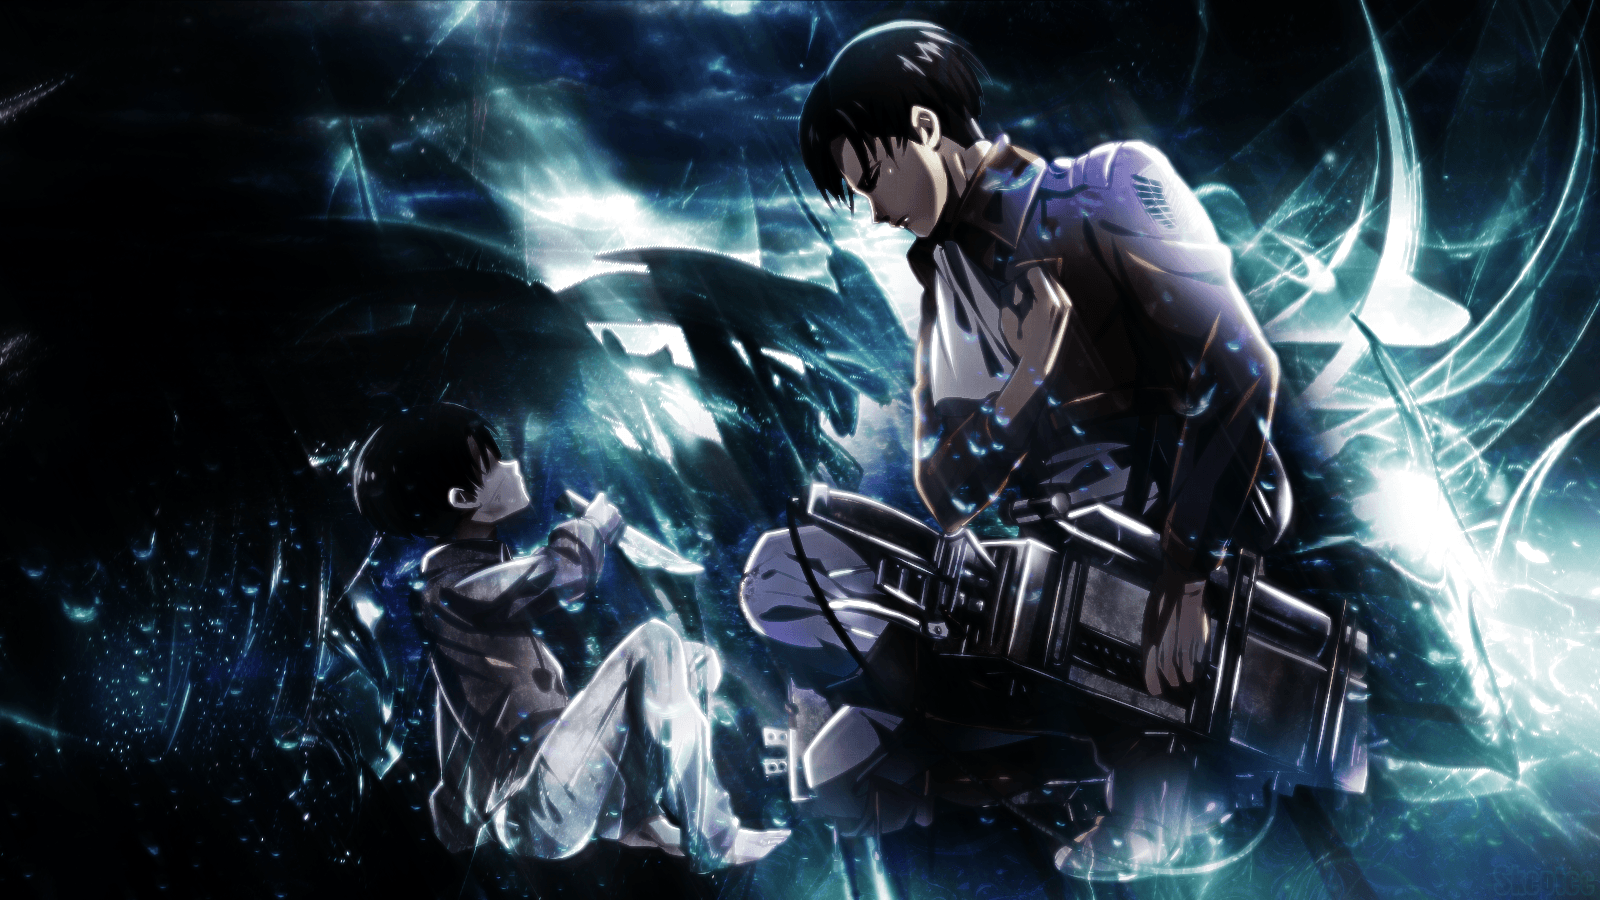 AOT Wallpapers - Wallpaper Cave